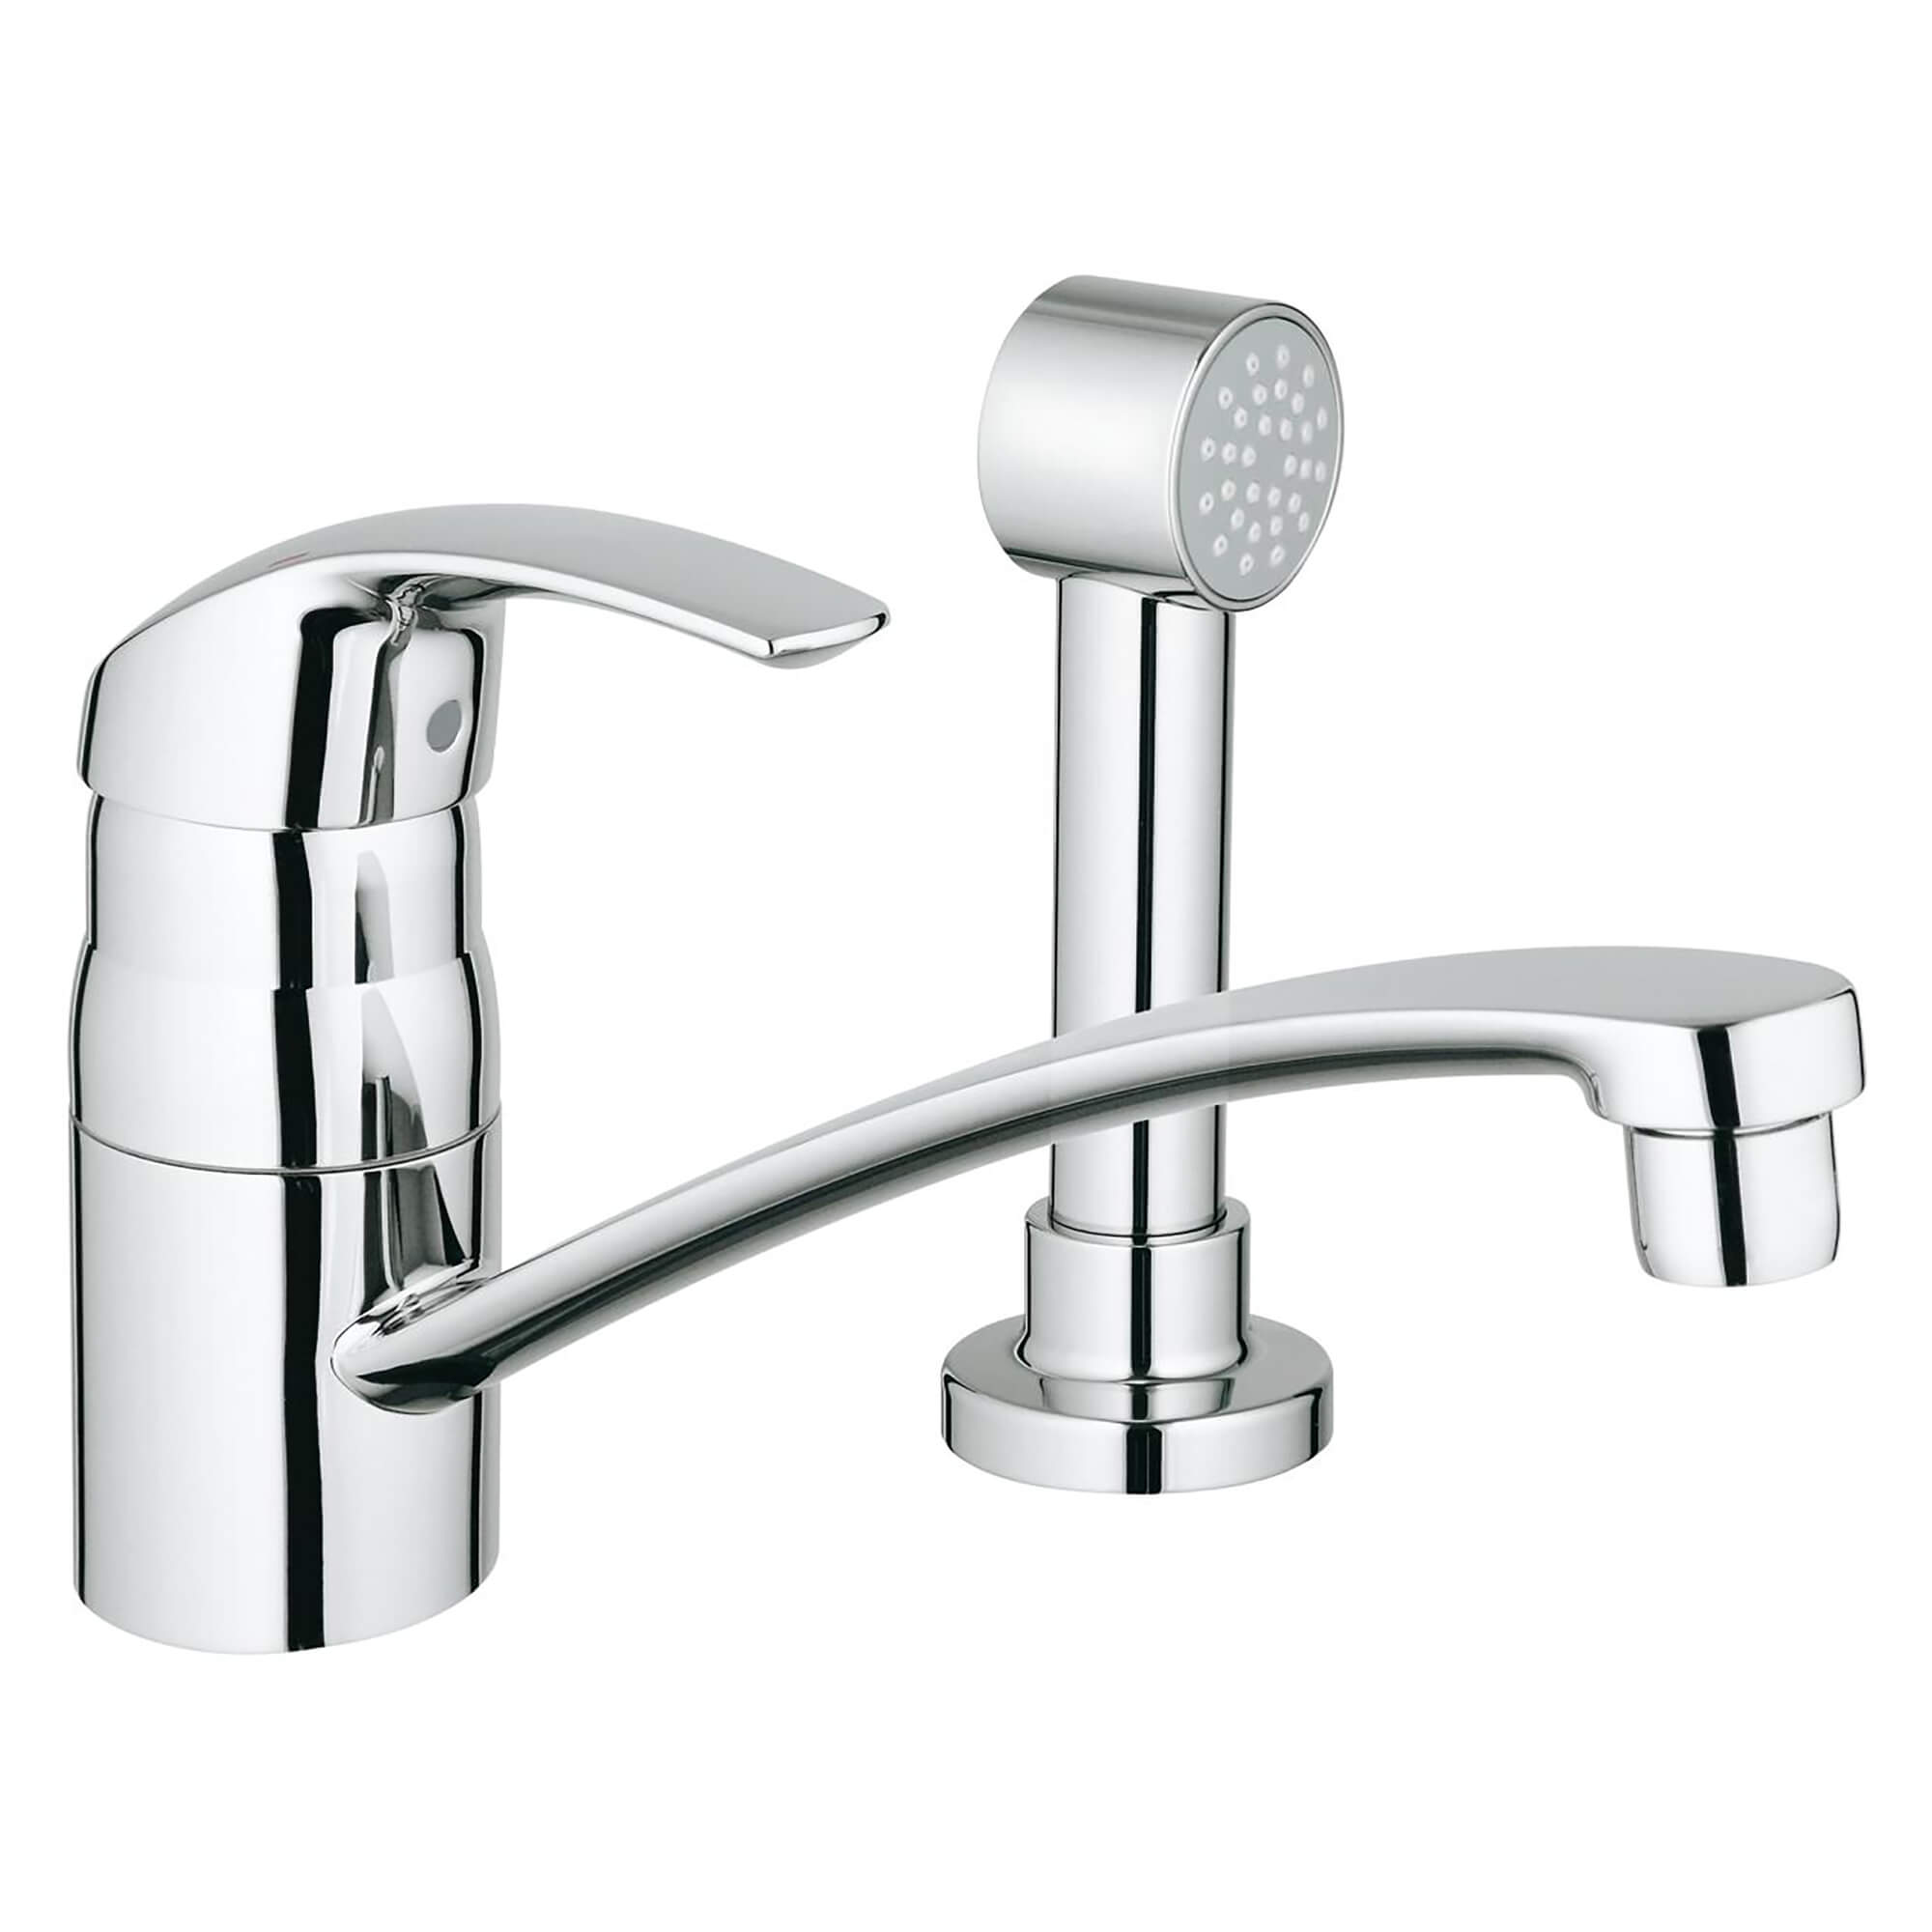 single handle kitchen faucet 1 75 gpm with side spray